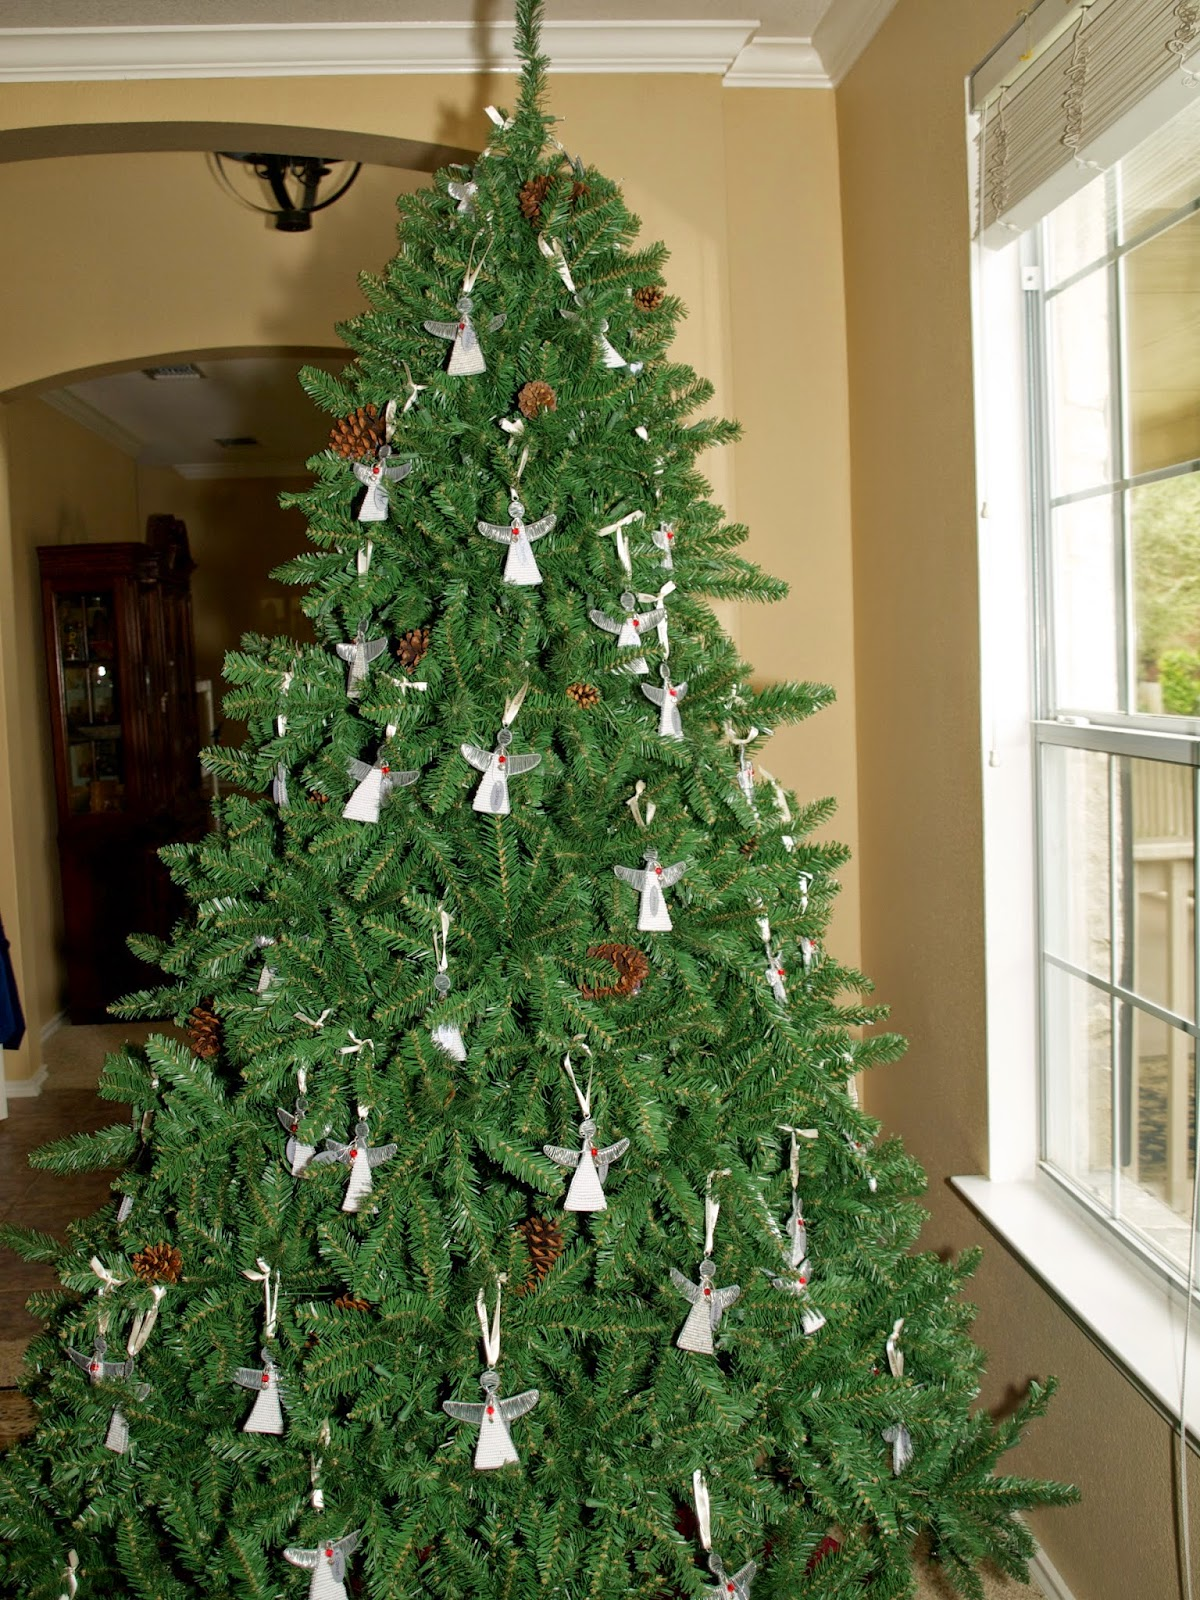 She Bought 100 Angel Christmas Tree Ornaments To Put On Her Own Christmas  Tree?